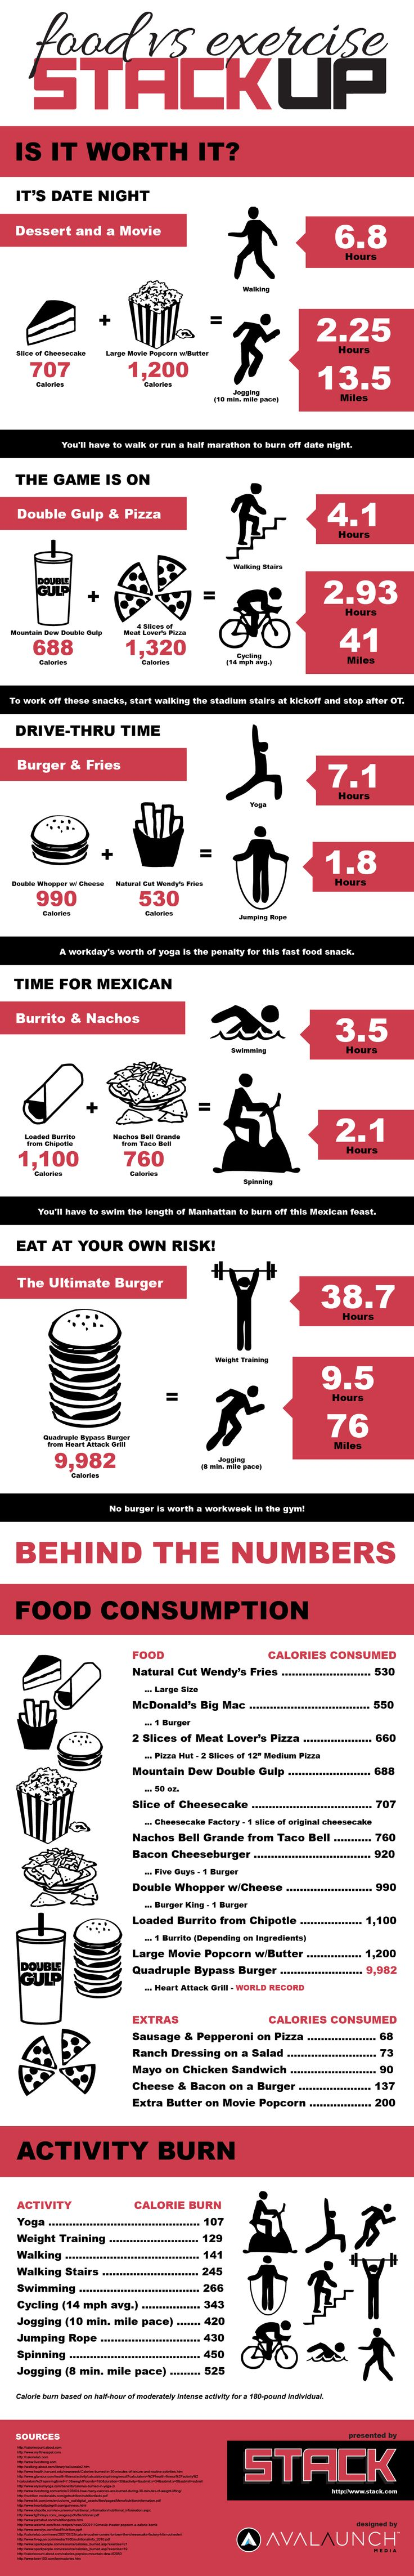 How much exercise will it take to counteract your favorite guilty-pleasure foods? #HealthTip